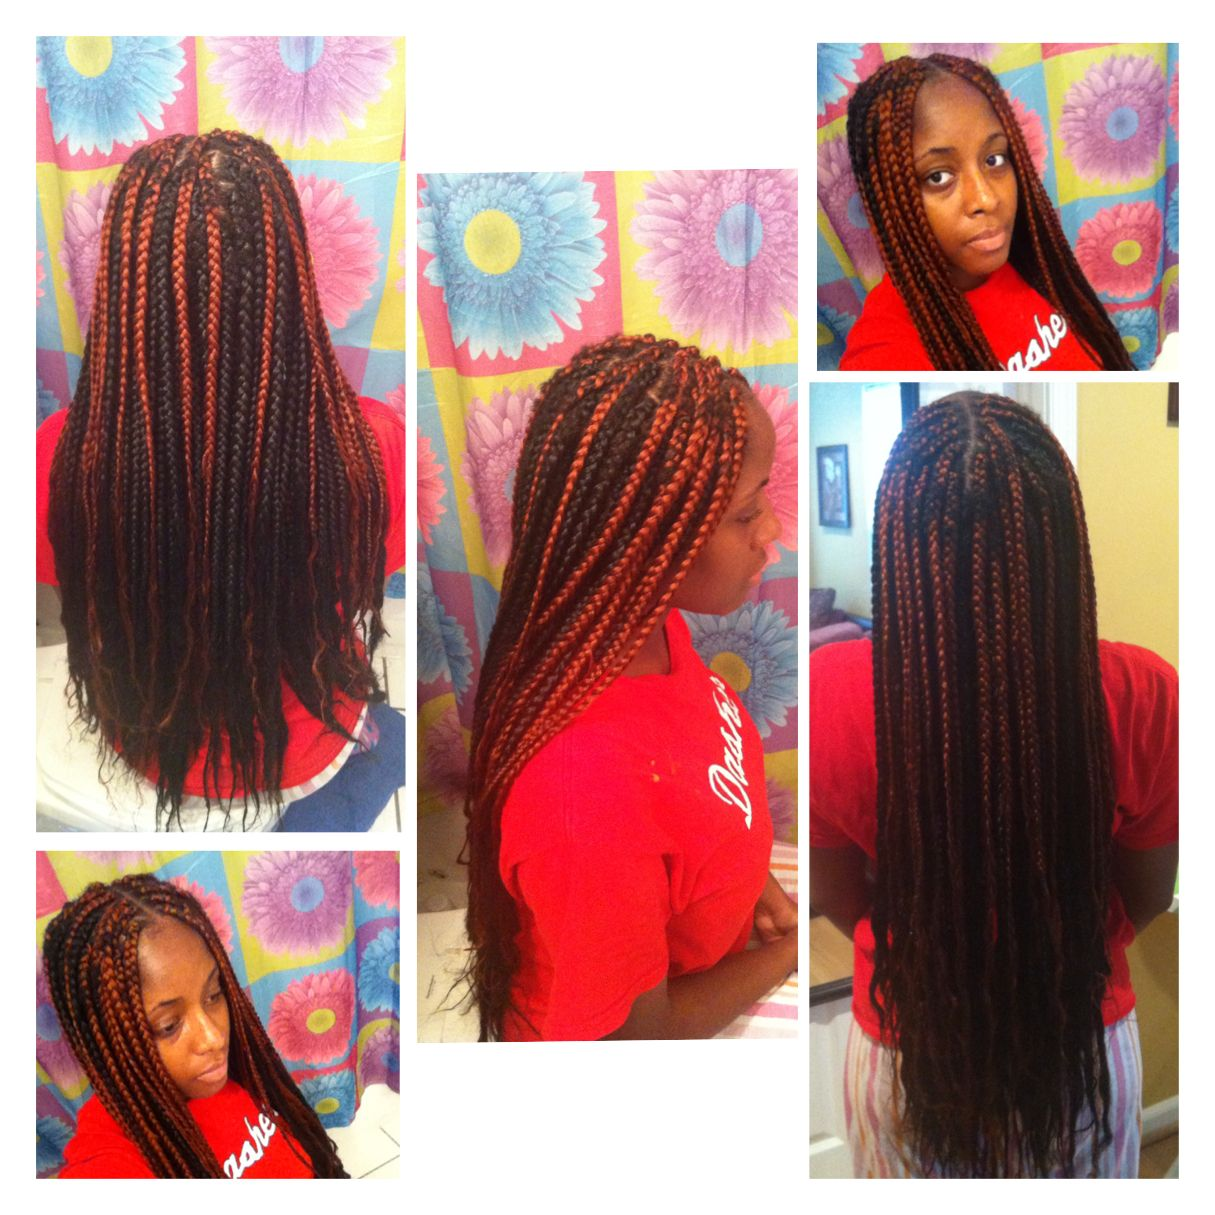 Layered Braids Hairstyles Box Braids With Color Protectivestyle Twists Braids